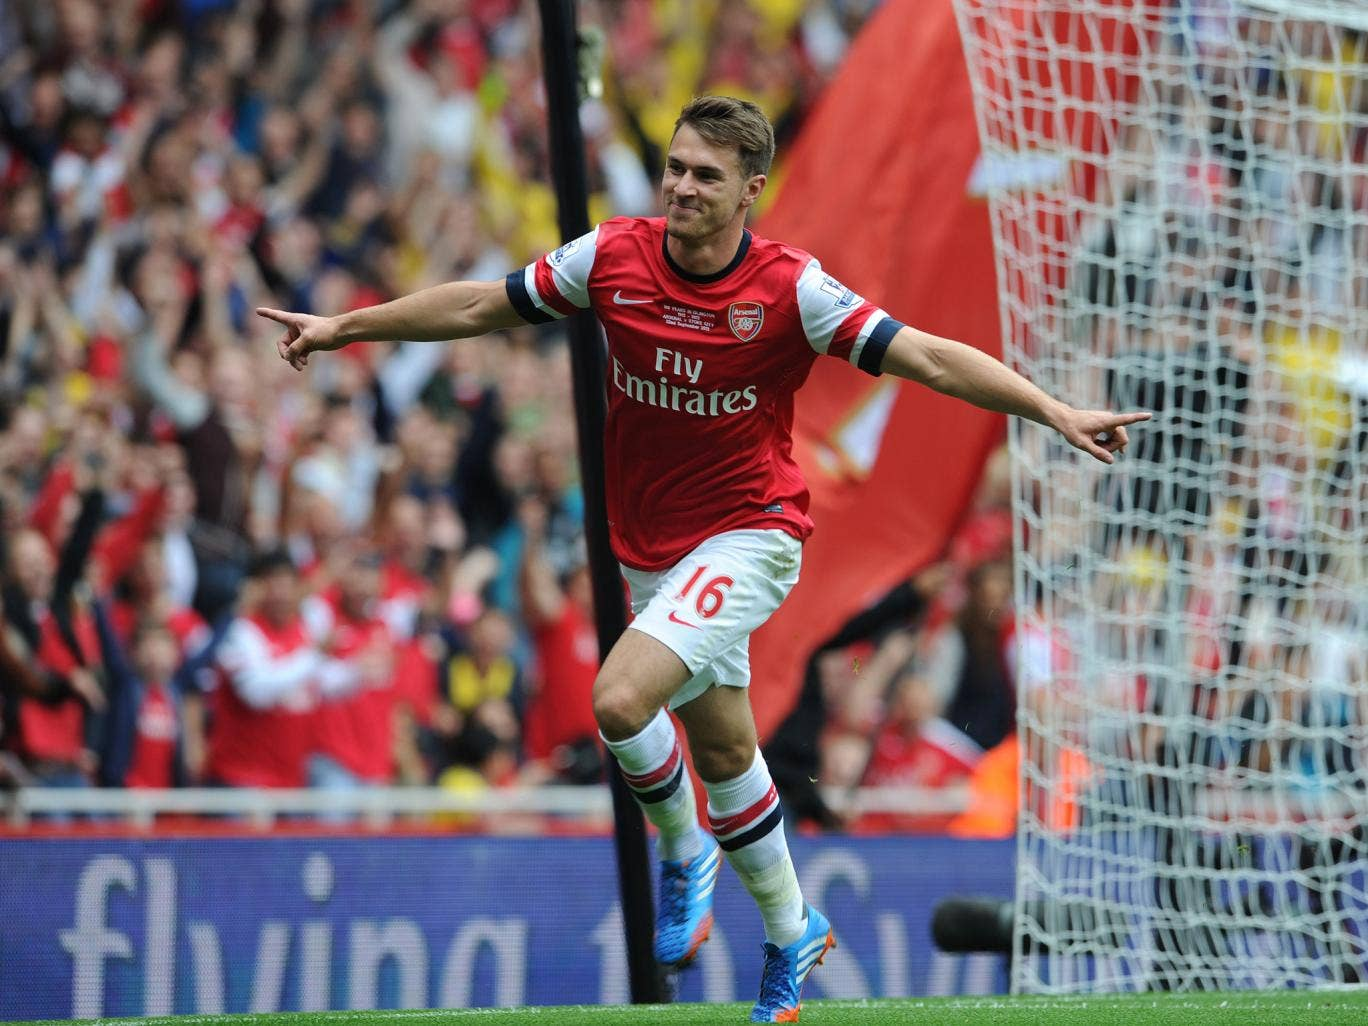 Aaron Ramsey scores yet again to help Arsenal to victory against Stoke